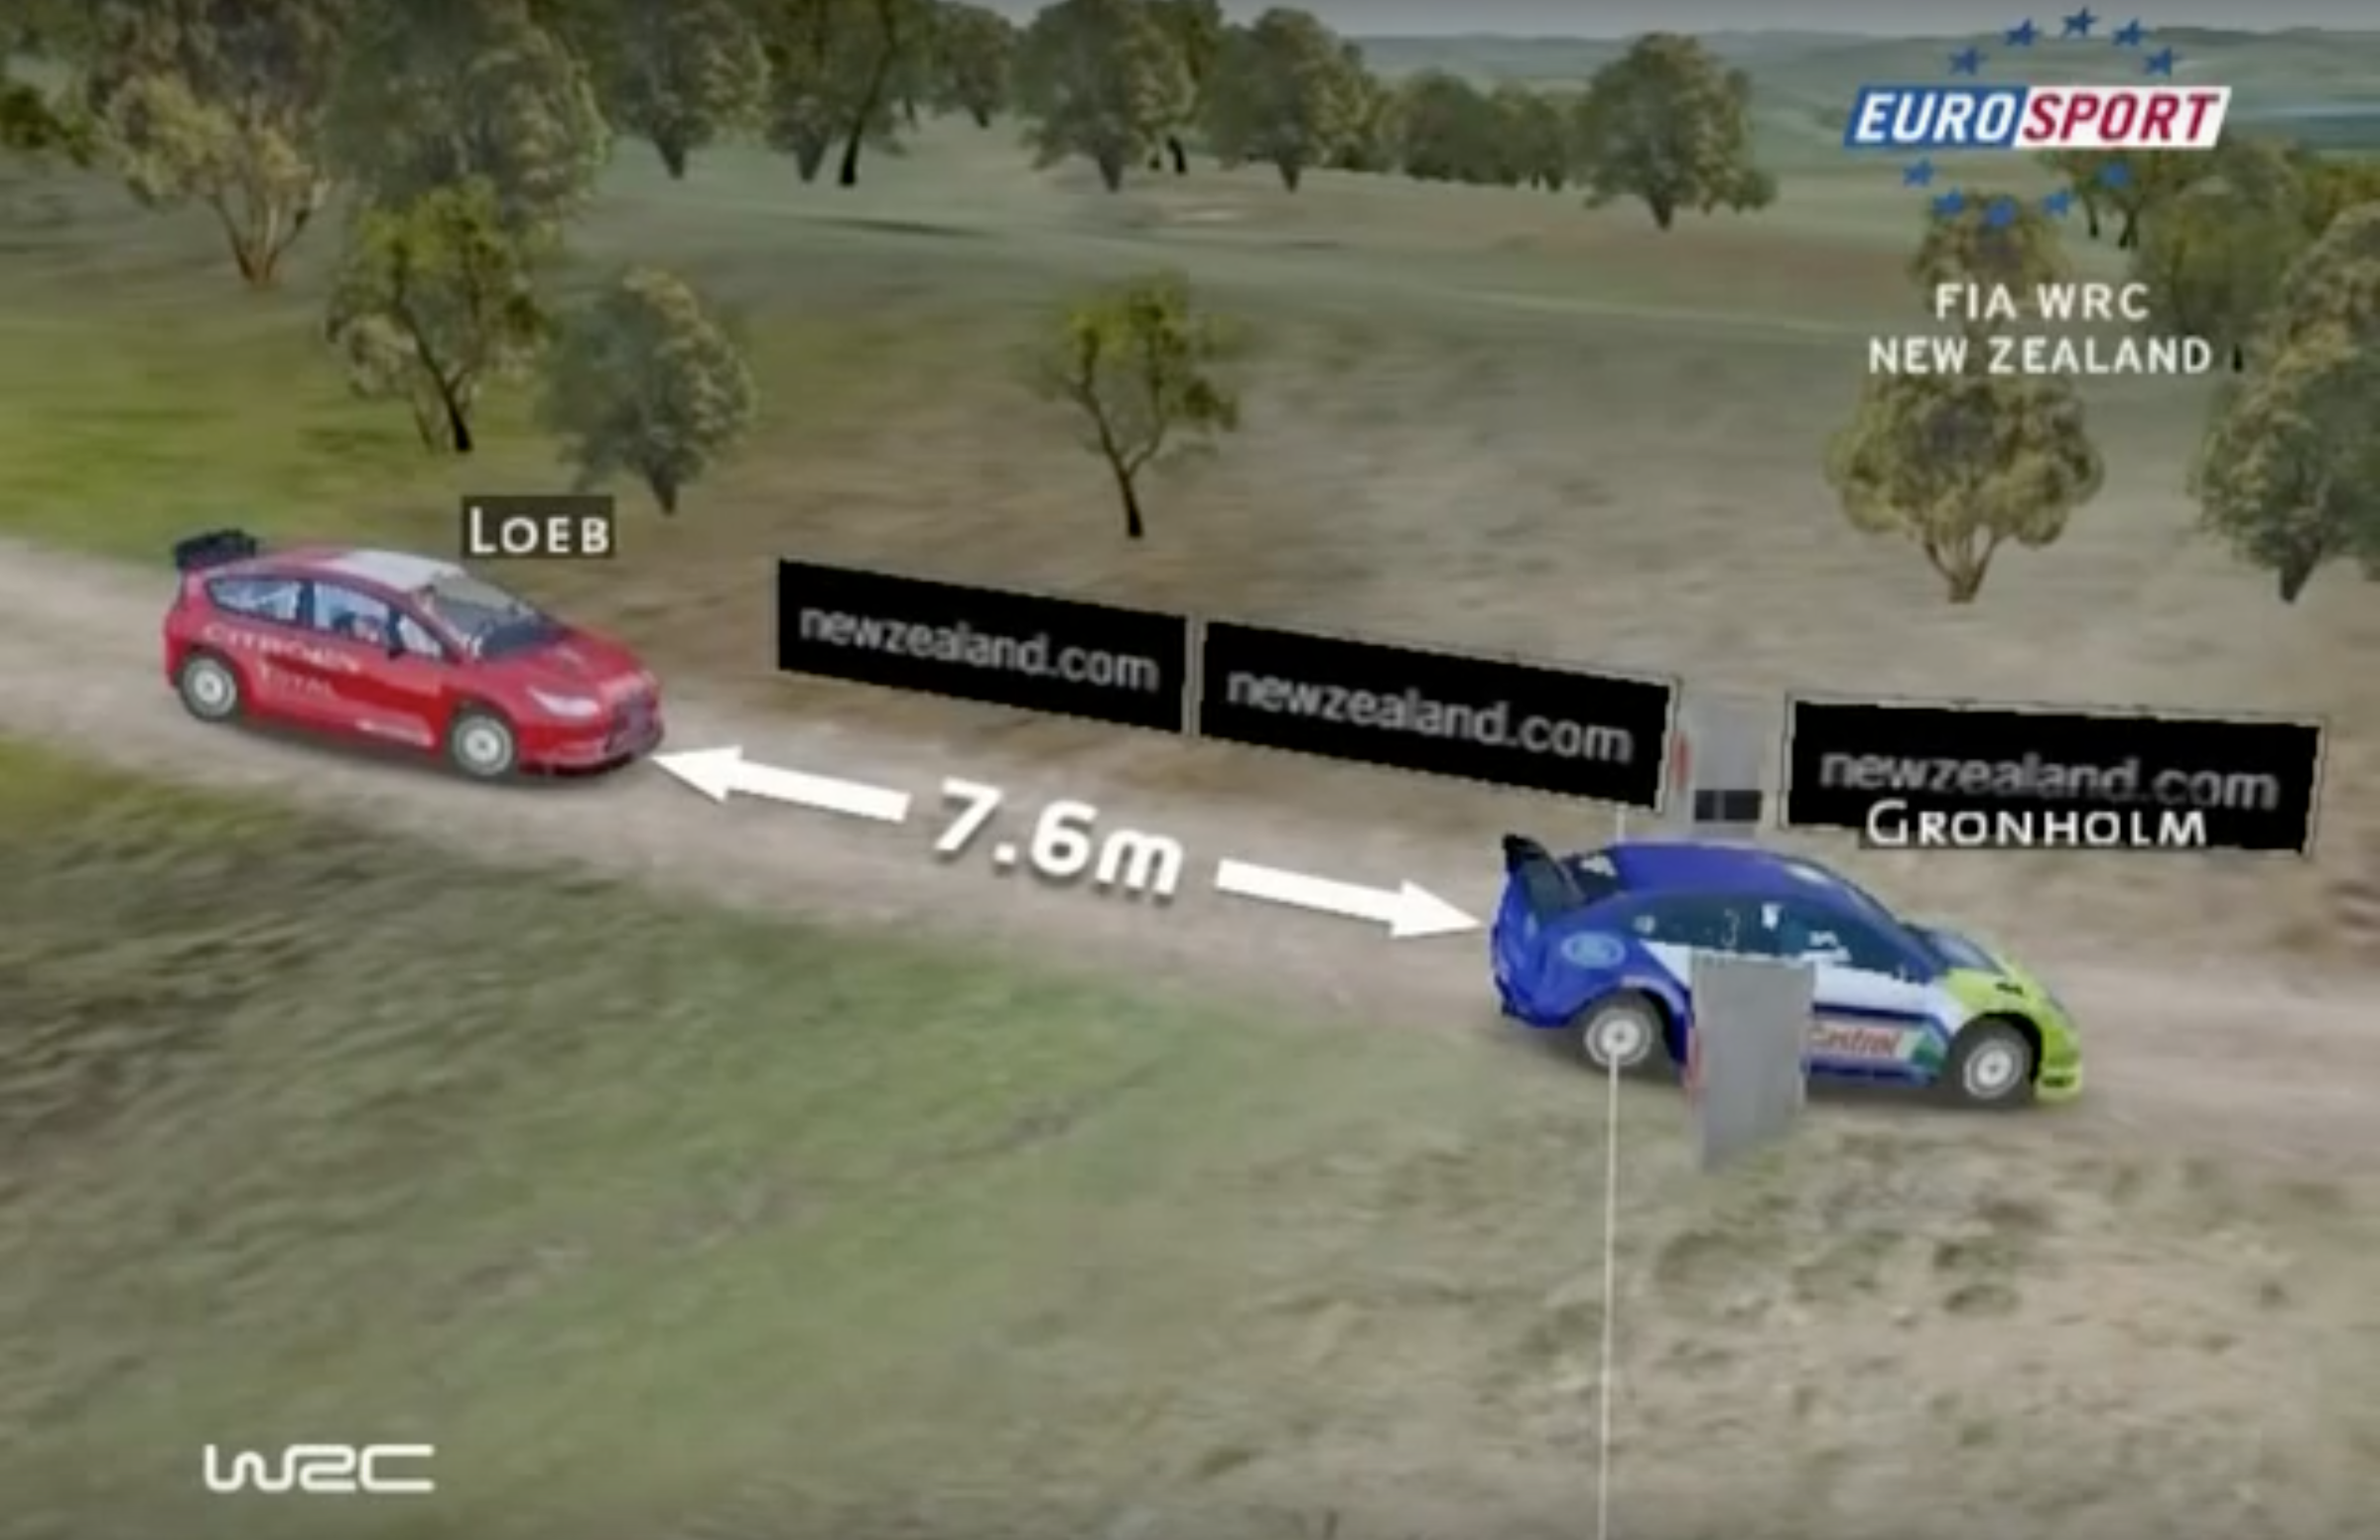 Eurosport's Virtual Spectator demonstrated what the rally race would have looked like if the cars had started beside each other.